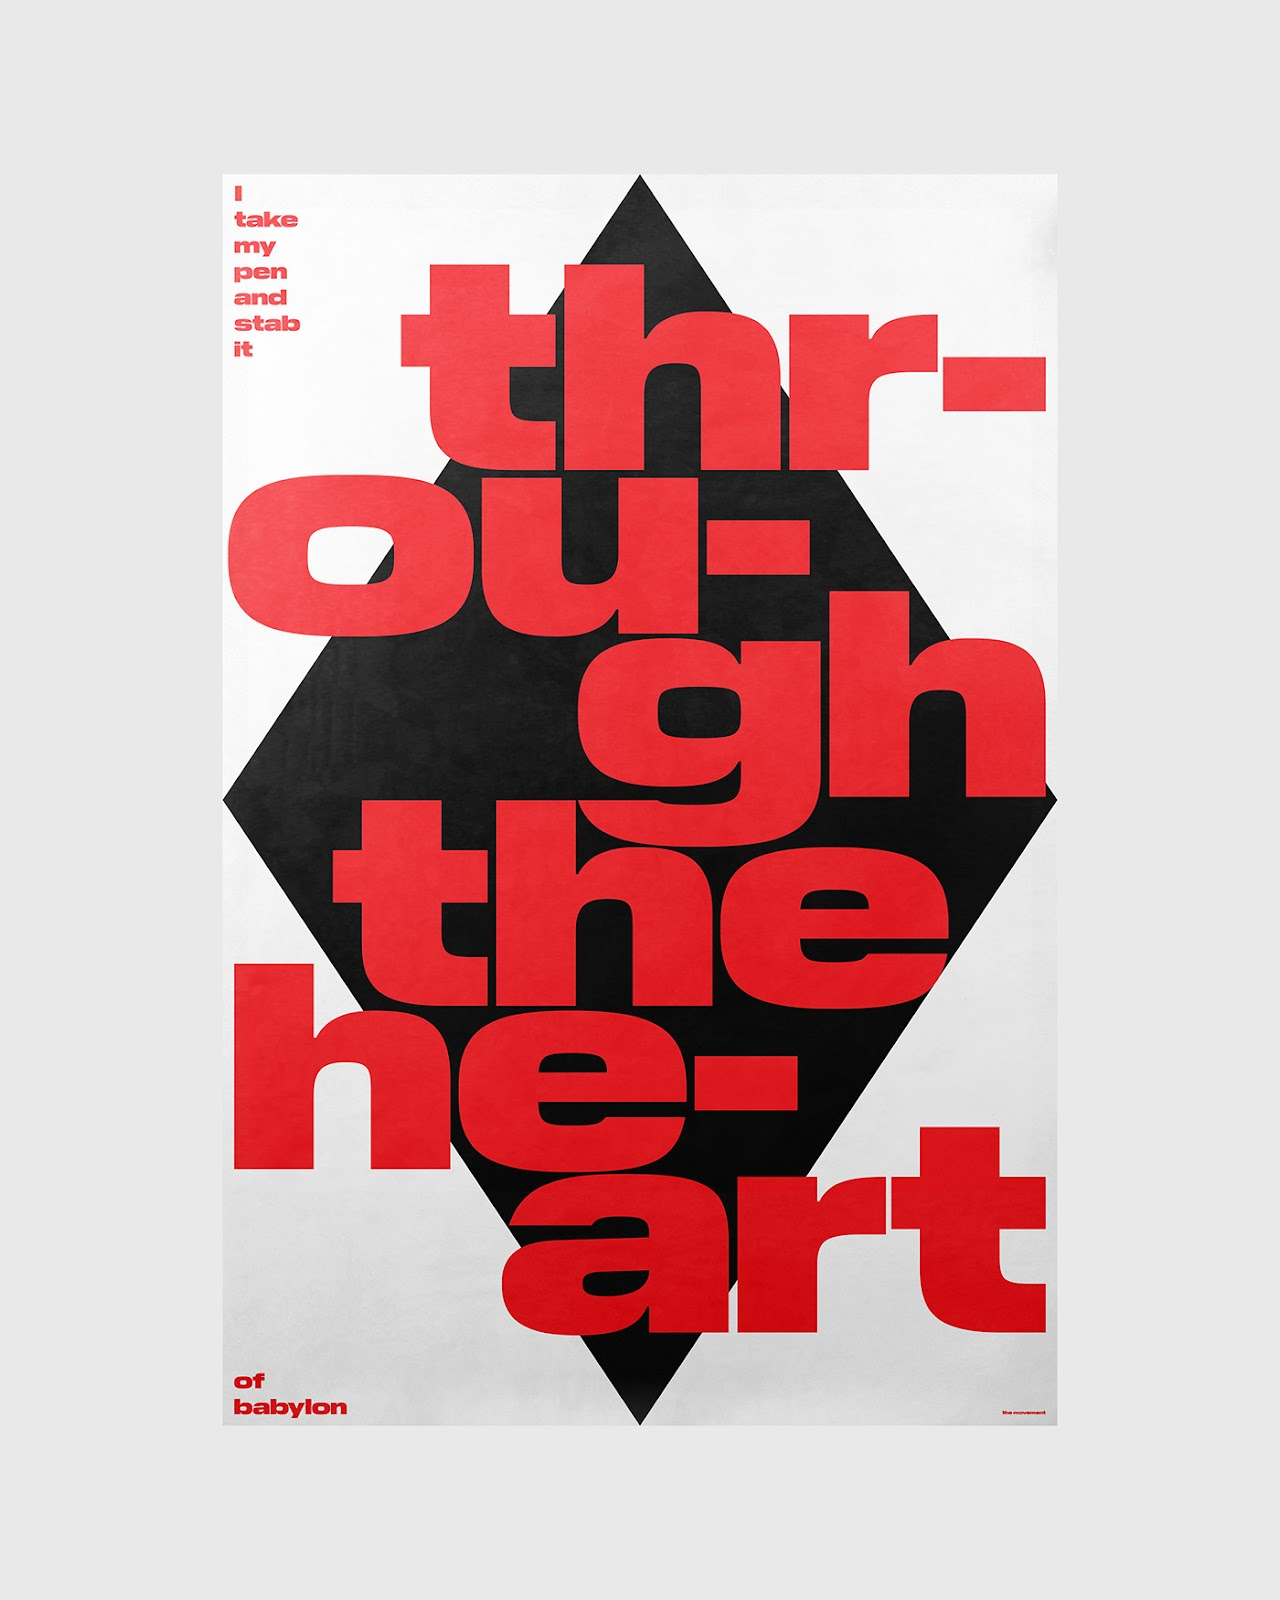 Through The Heart poster by Xtian Miller